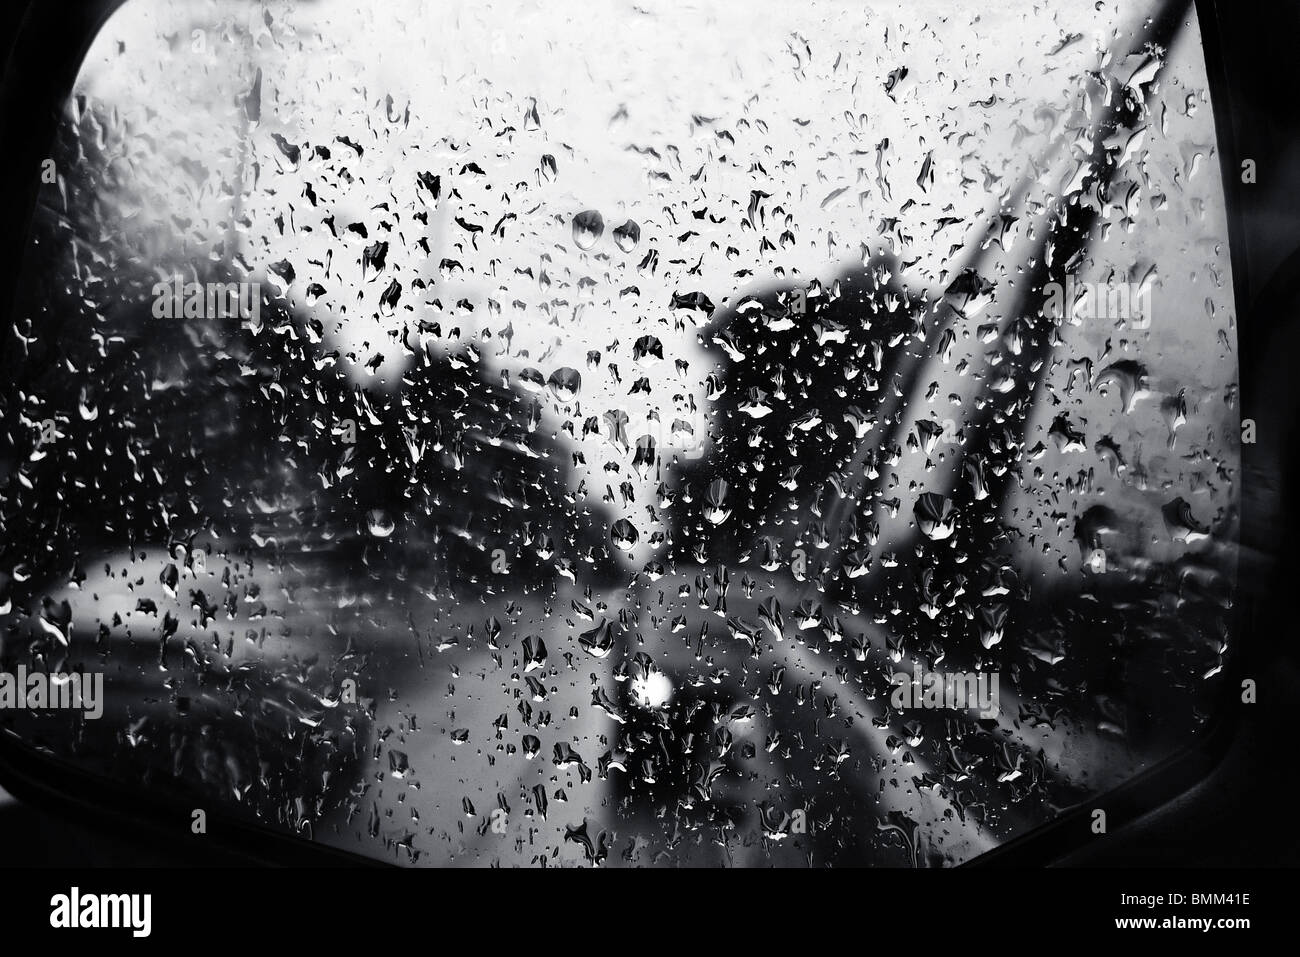 Raindrops of the car mirror on a gray lonely rainy day. - Stock Image